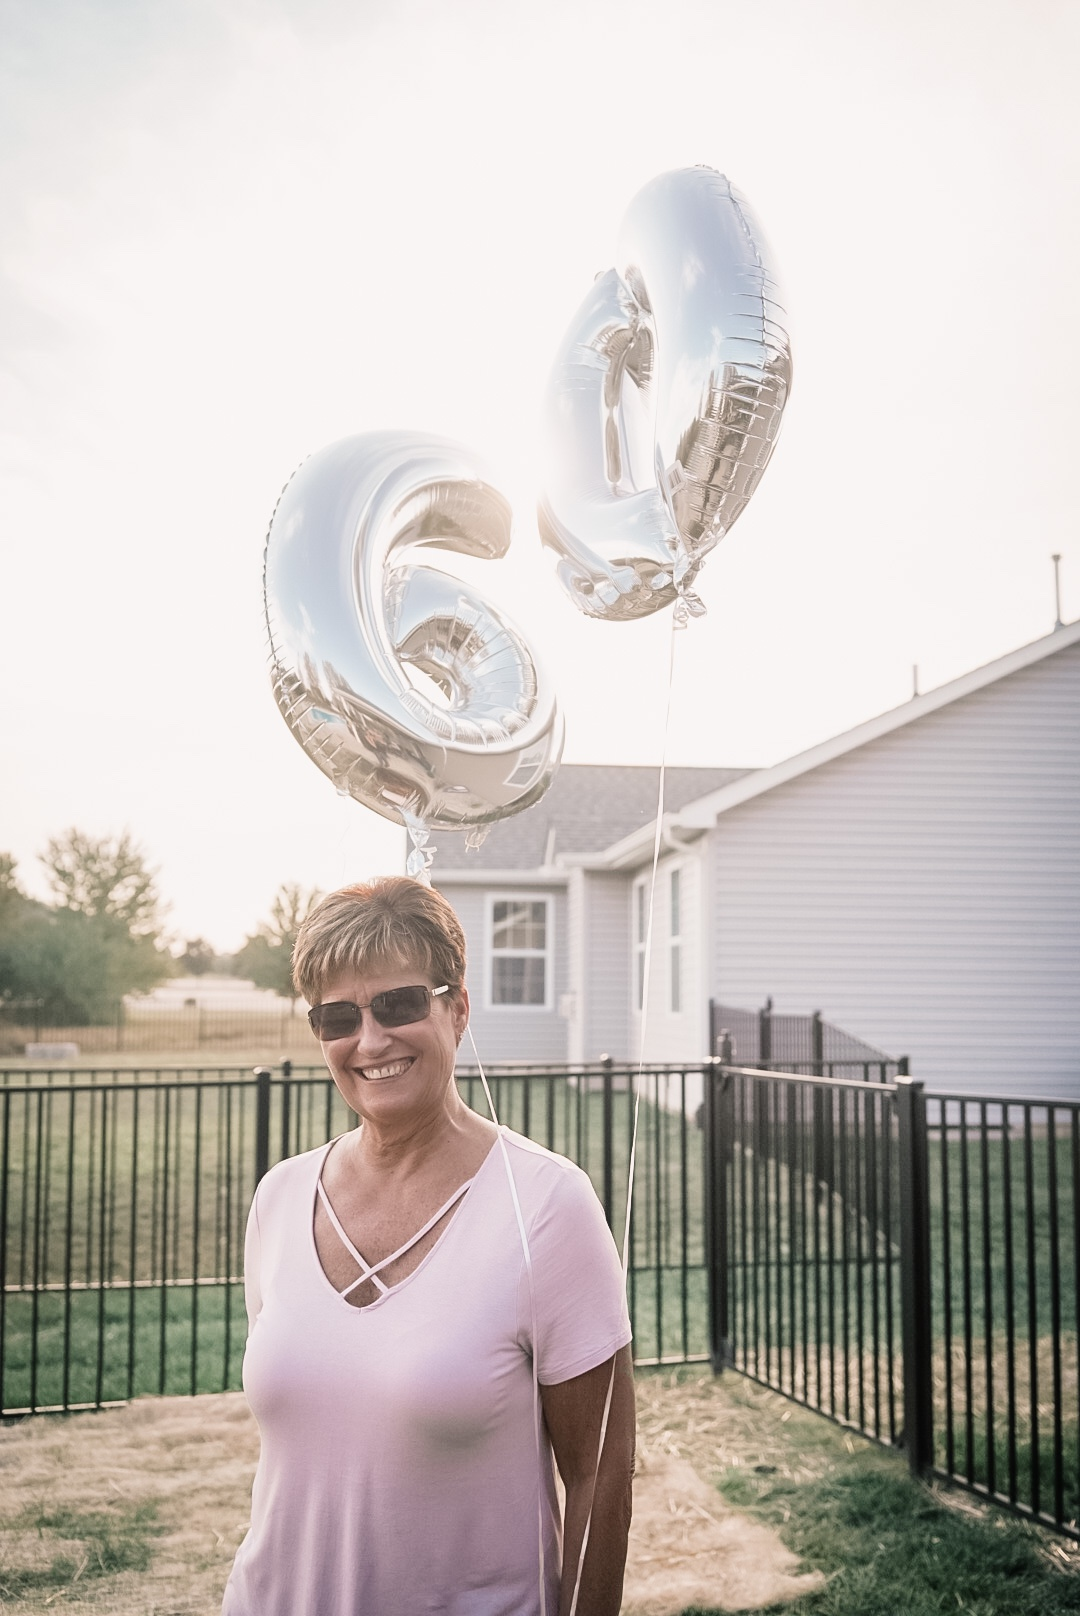 Woman standing smiling at camera holding two balloons - one balloon is a 6 and one balloon is a 0